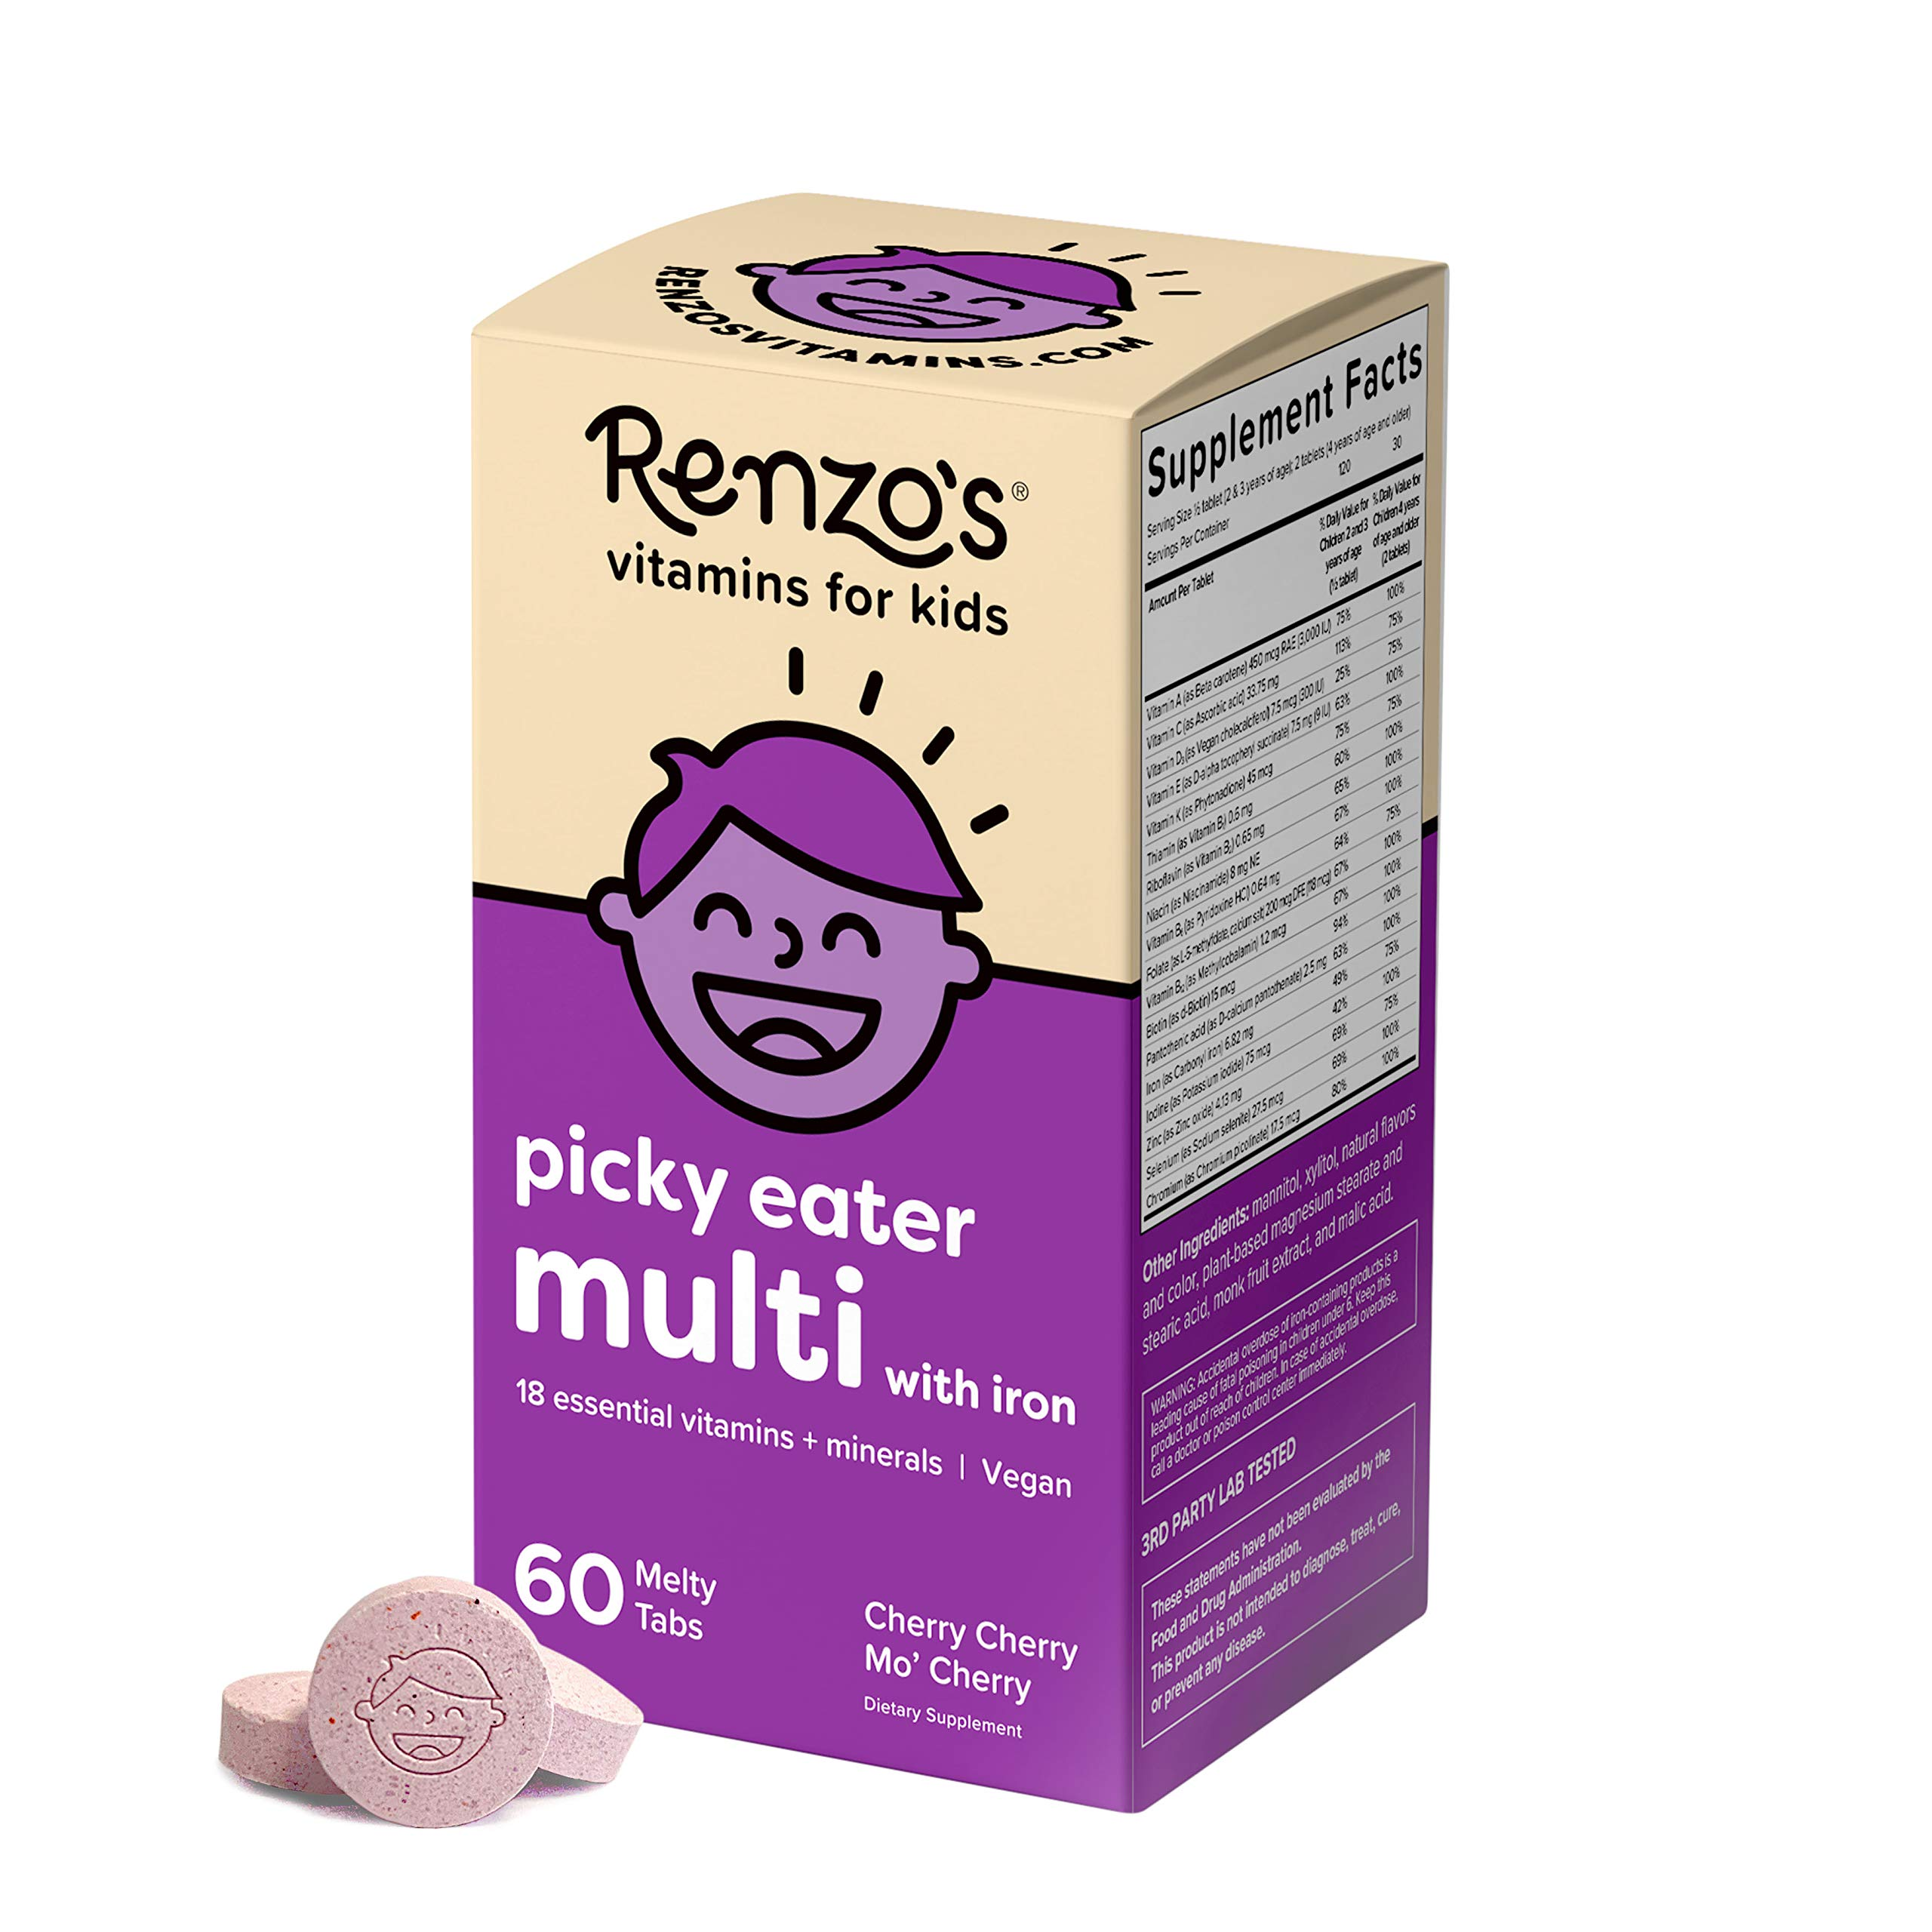 Renzo's Picky Eater Kids Multivitamin with Iron, Dissolvable Vegan Vitamins for Kids, Zero Sugar, Cherry Cherry Mo' Cherry Flavor, 60 Melty Tabs